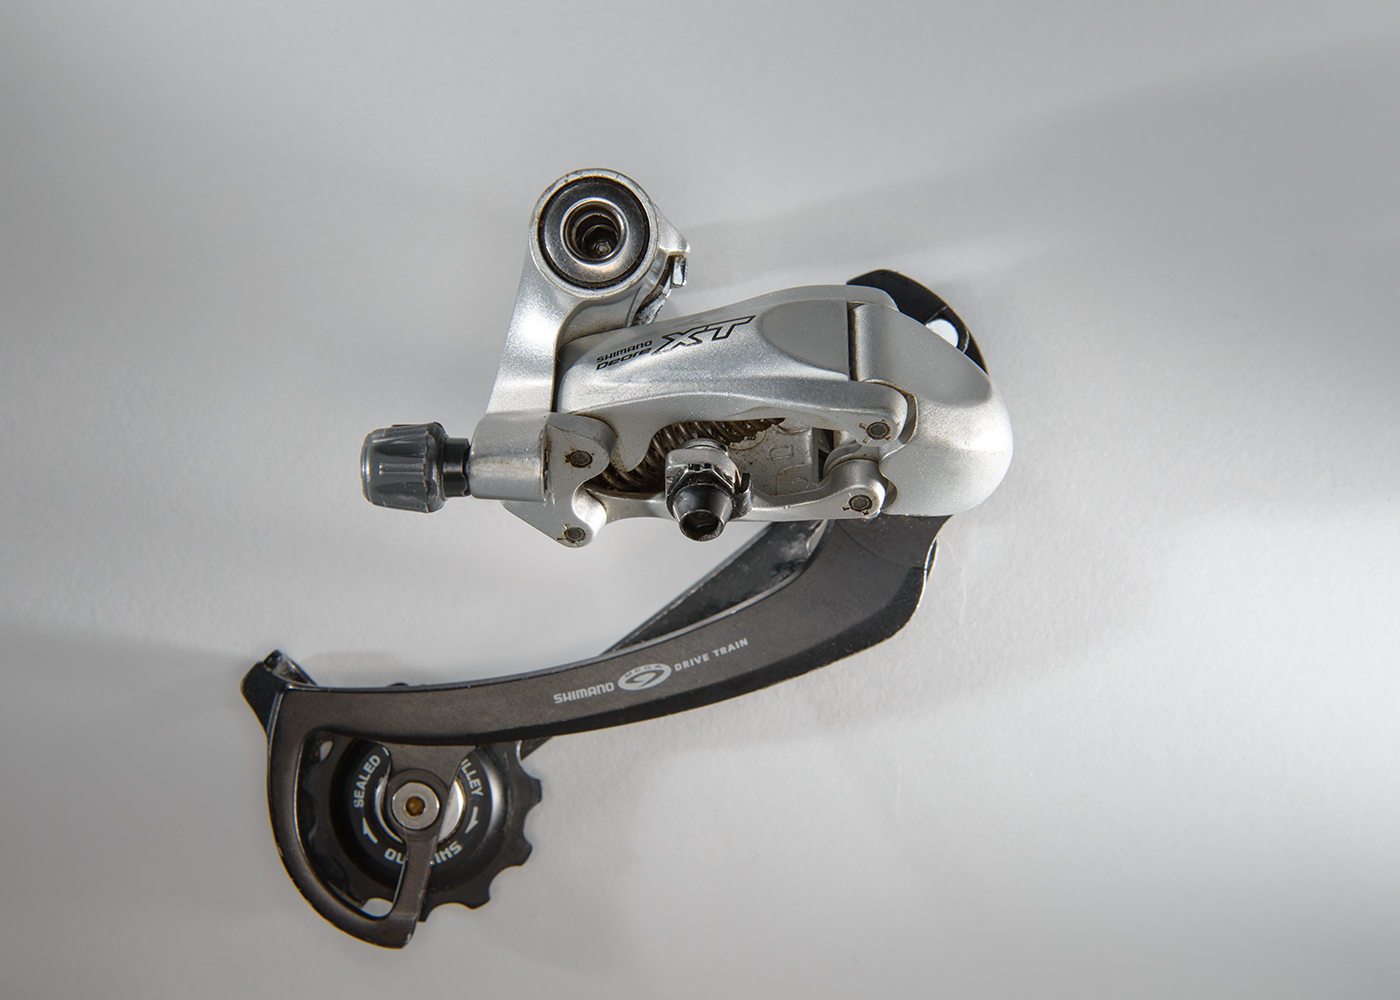 Shimano Deore XT Rapid Rise M760  It was introduced in 2003 and provided a claimed advantage over high-normal derailleurs but alas it did not.